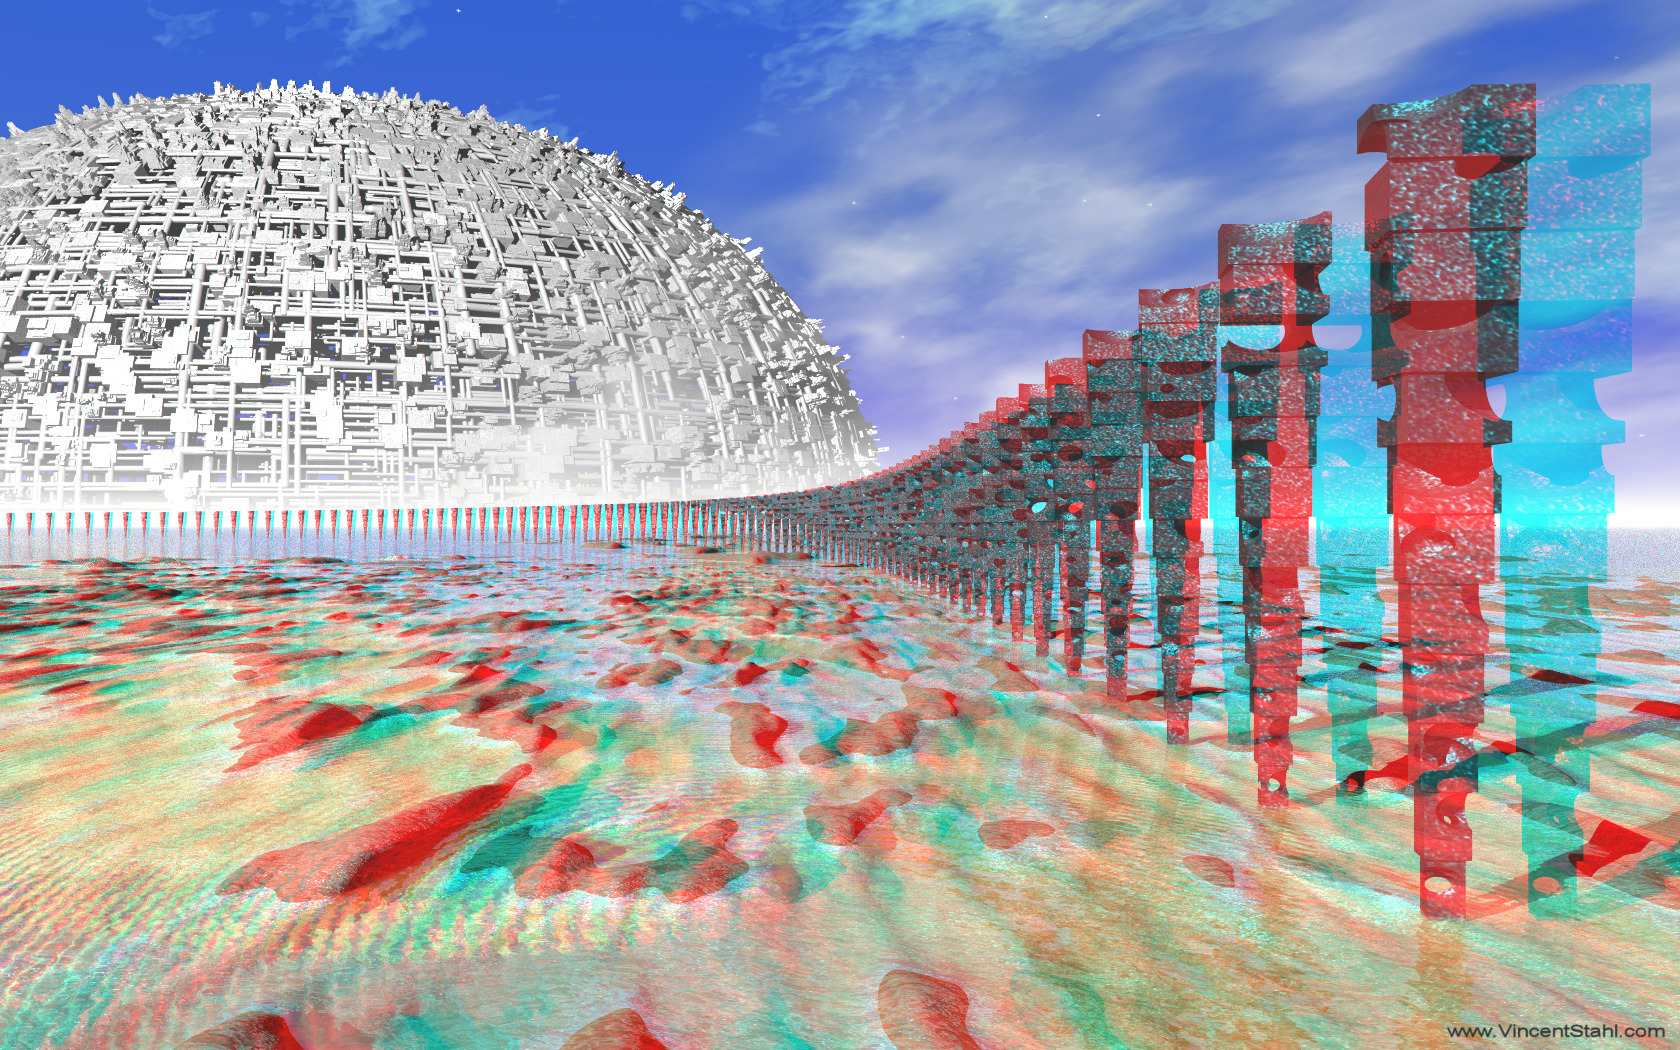 Shallow Water Poles - 3D stereo anaglyph color